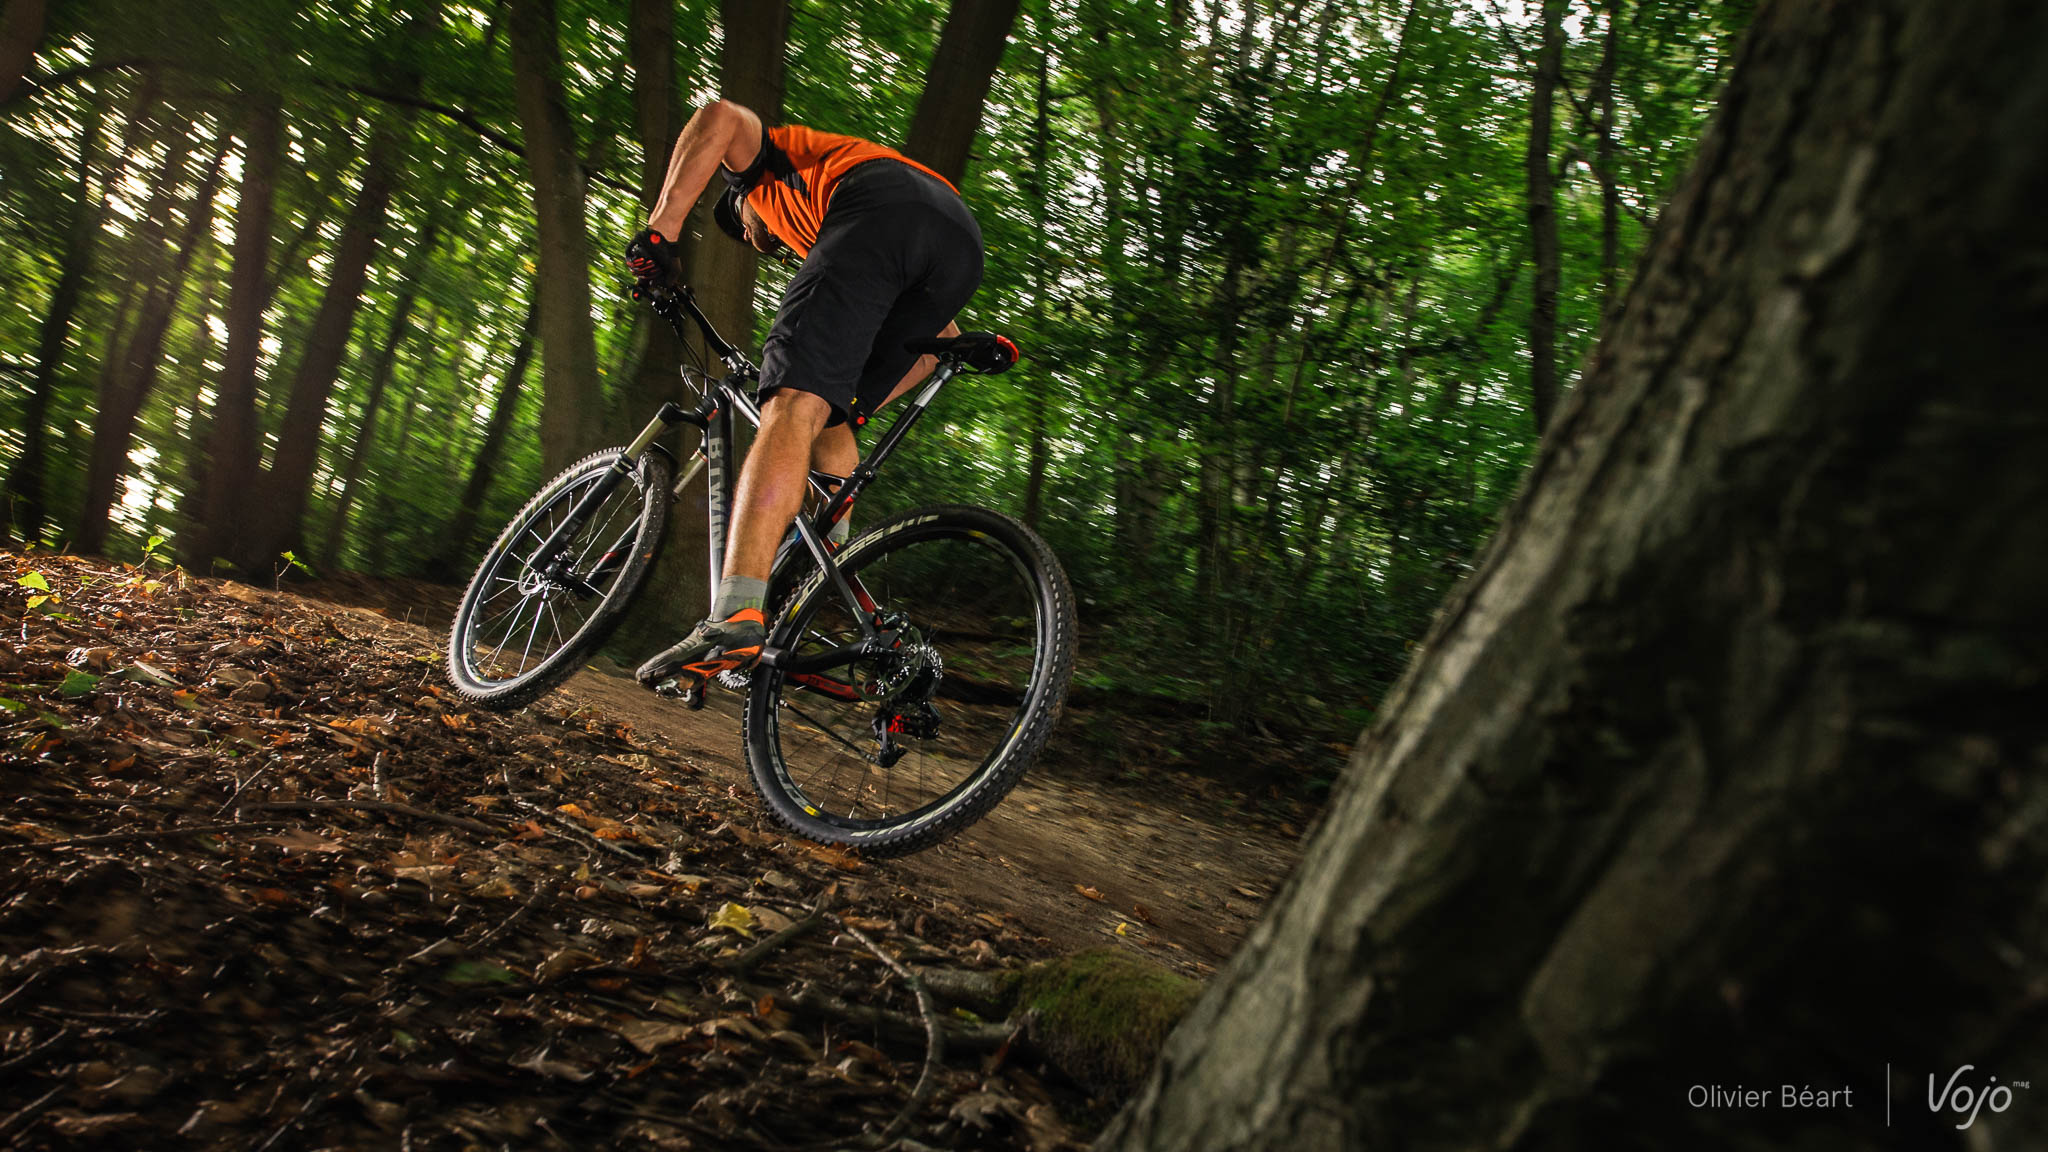 BTwin_Rafal_900s_Action_Copyright_OBeart_VojoMag-11